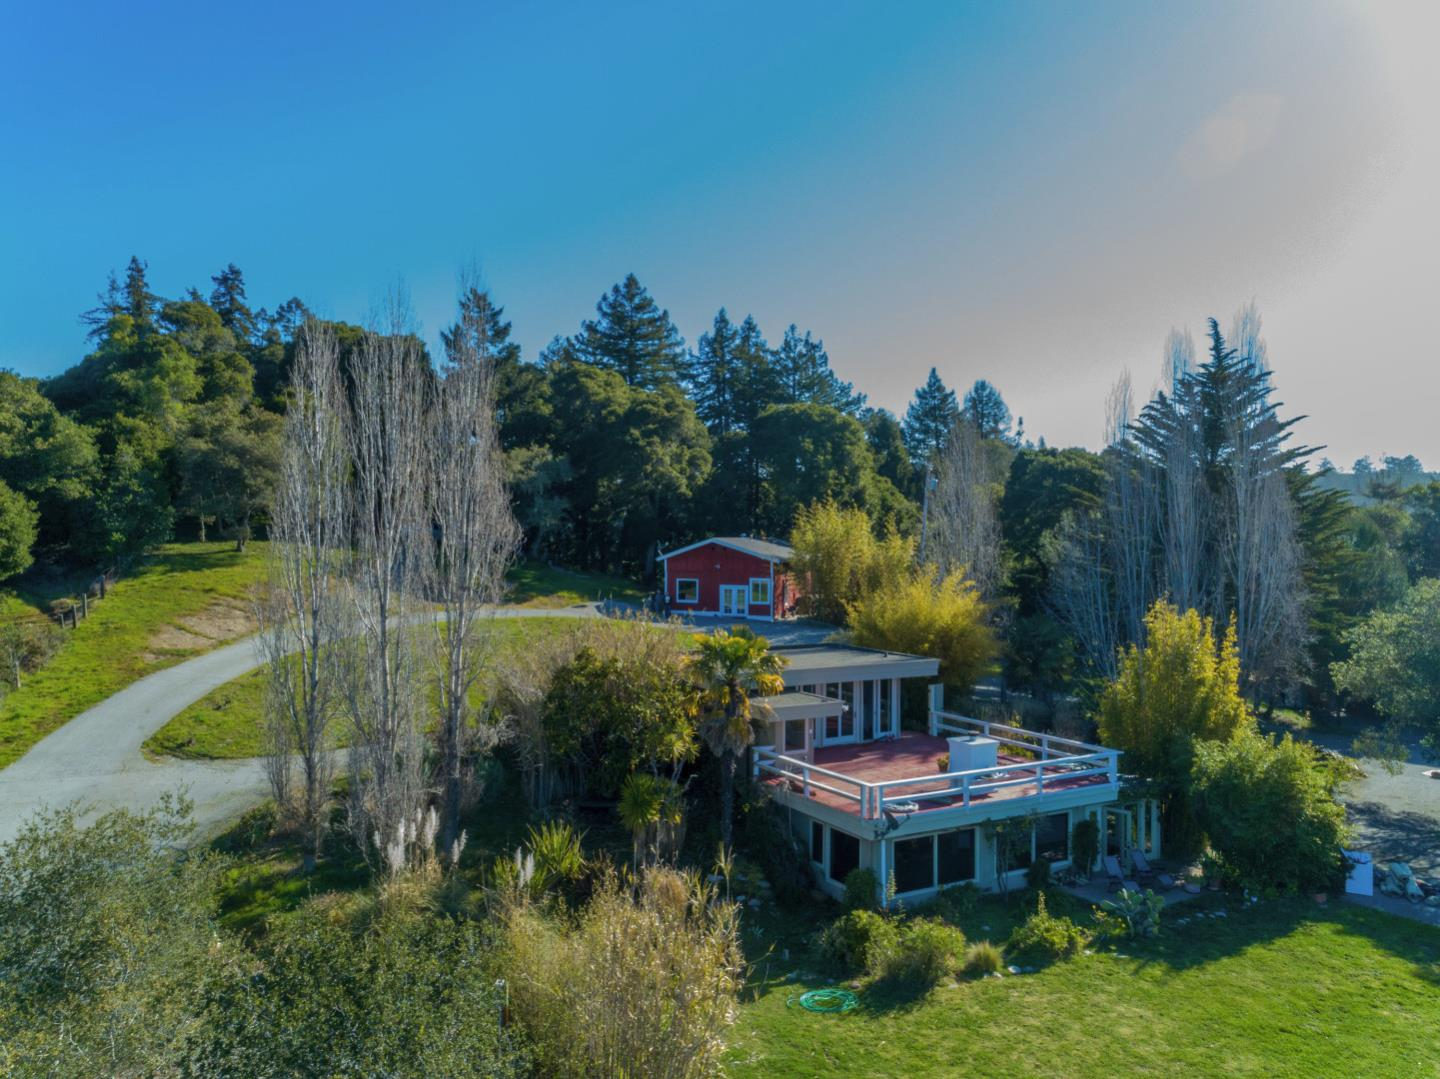 Rare Ocean View Property! Beautiful, one-of-a kind setting with breathtaking ocean views on 6.4 bucolic acres of privacy, pastures and woods.  Highly desired location, approx. 1/2 mile in just before the main kiosk of Nisene Marks State Park! Property includes a lovely 2 bed 2 bath main home with gorgeous vista views and a separate repurposed barn including office area, lounge & extra storage. Excellent landscaped yard, ample gardening spaces, large carport and a wonderful ocean view RV Pad with electricity, running water & septic hookups.  Lower pasture of approximately 4.5 acres offers fantastic potential for horses, livestock or agricultural use. This is truly an amazing property and a rare opportunity, well suited to outdoor enthusiasts or anyone looking for an iconic spot to call home; close to all Aptos amenities and a last stop before 10,000 acres of State Park land & miles of local trails.